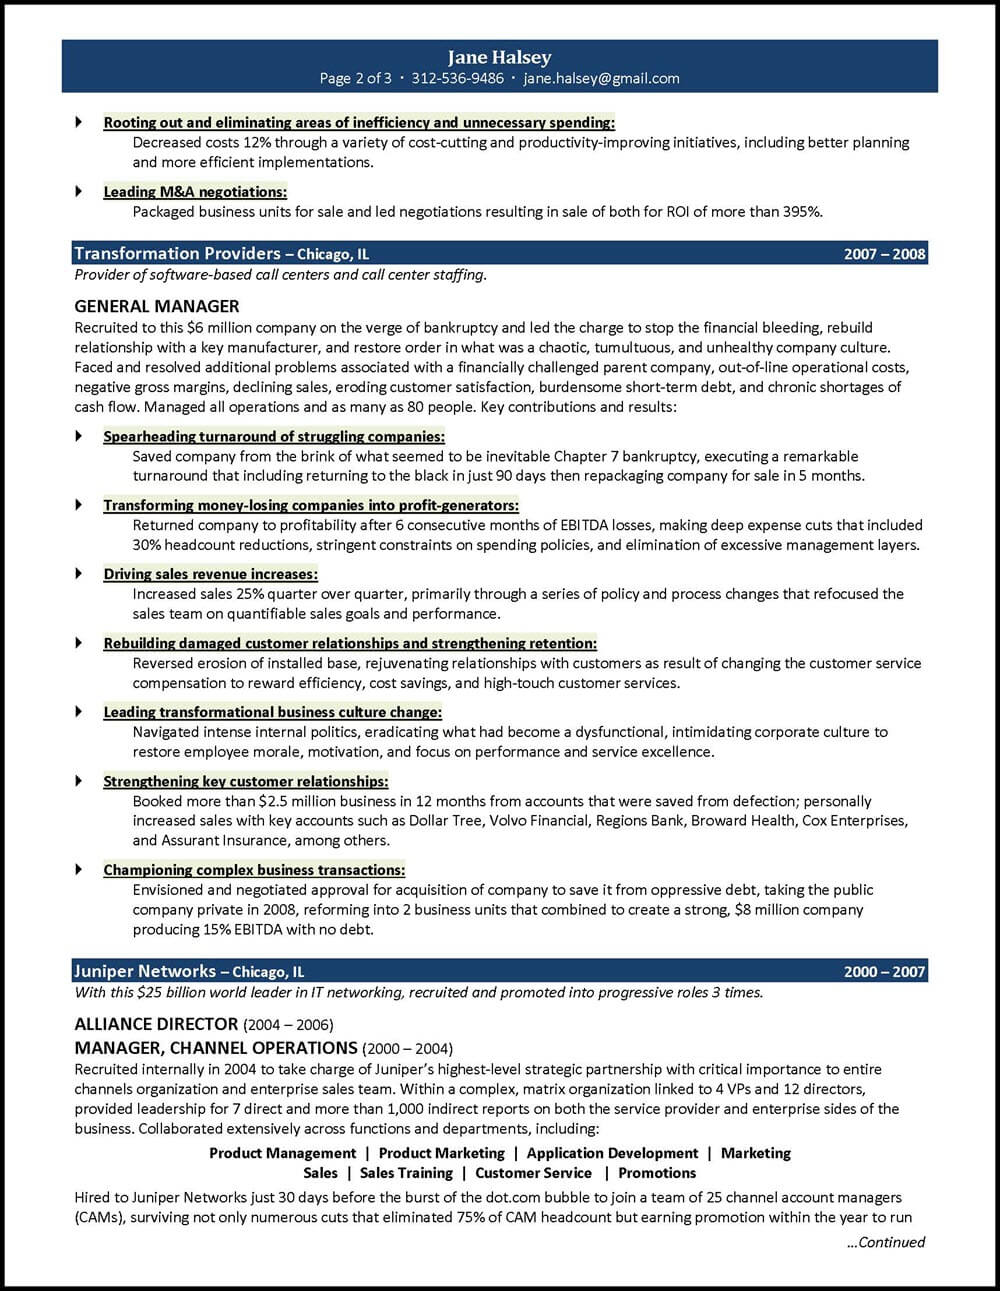 General Resume Templates General Manager Resume Example For A CEO GM Candidate